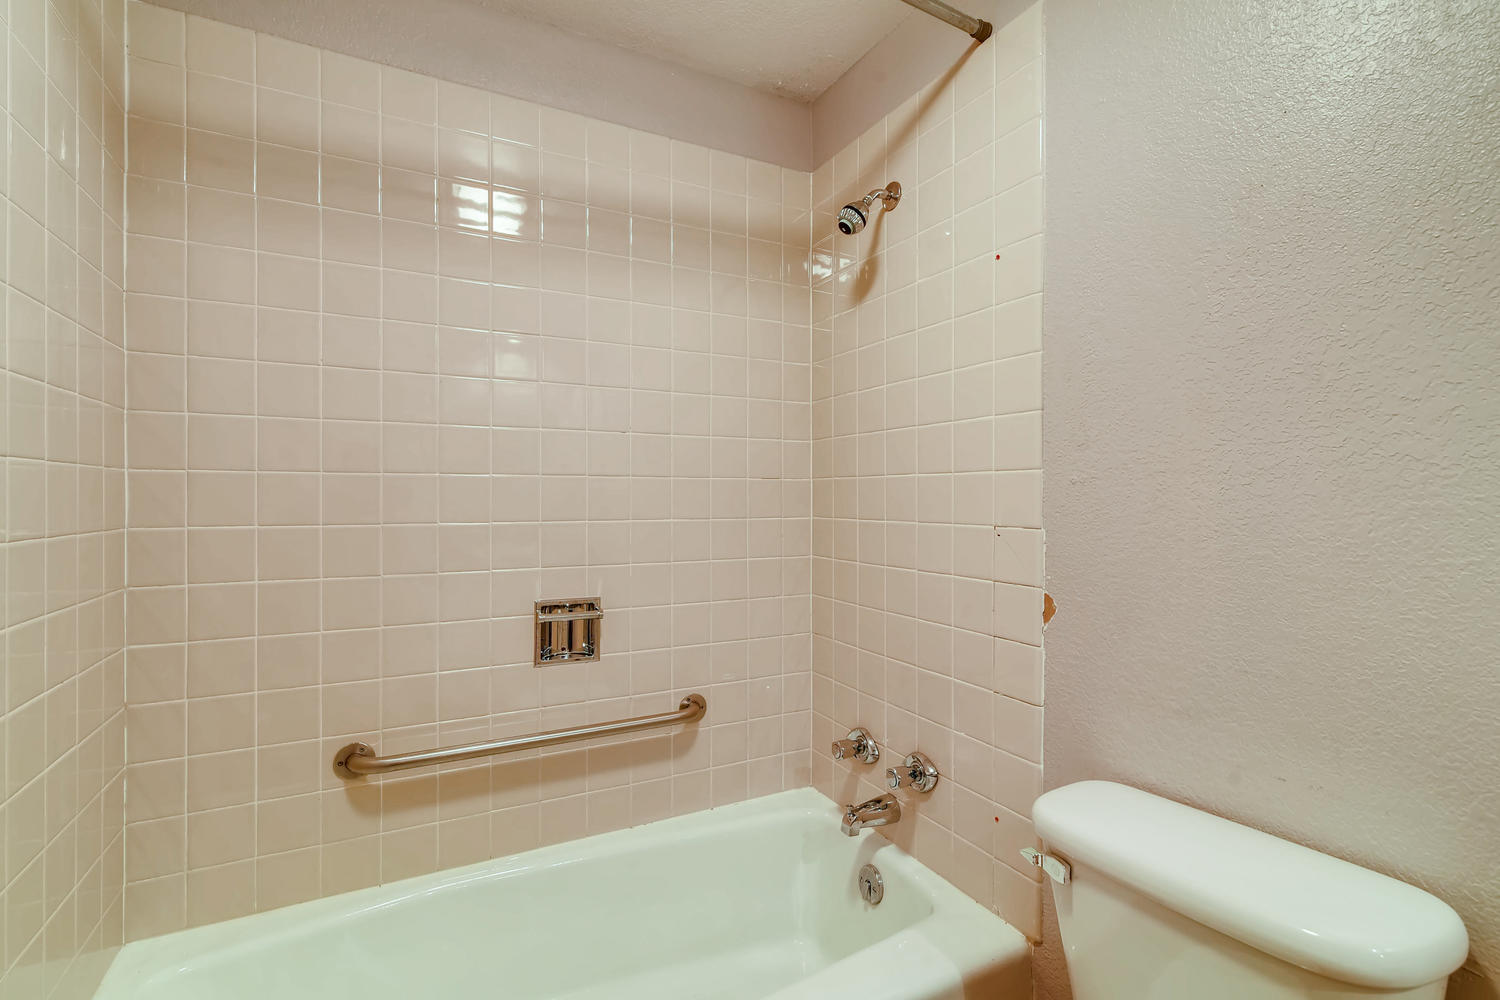 REAL ESTATE LISTING: 1201 E 1st Street Loveland CO Master Bath